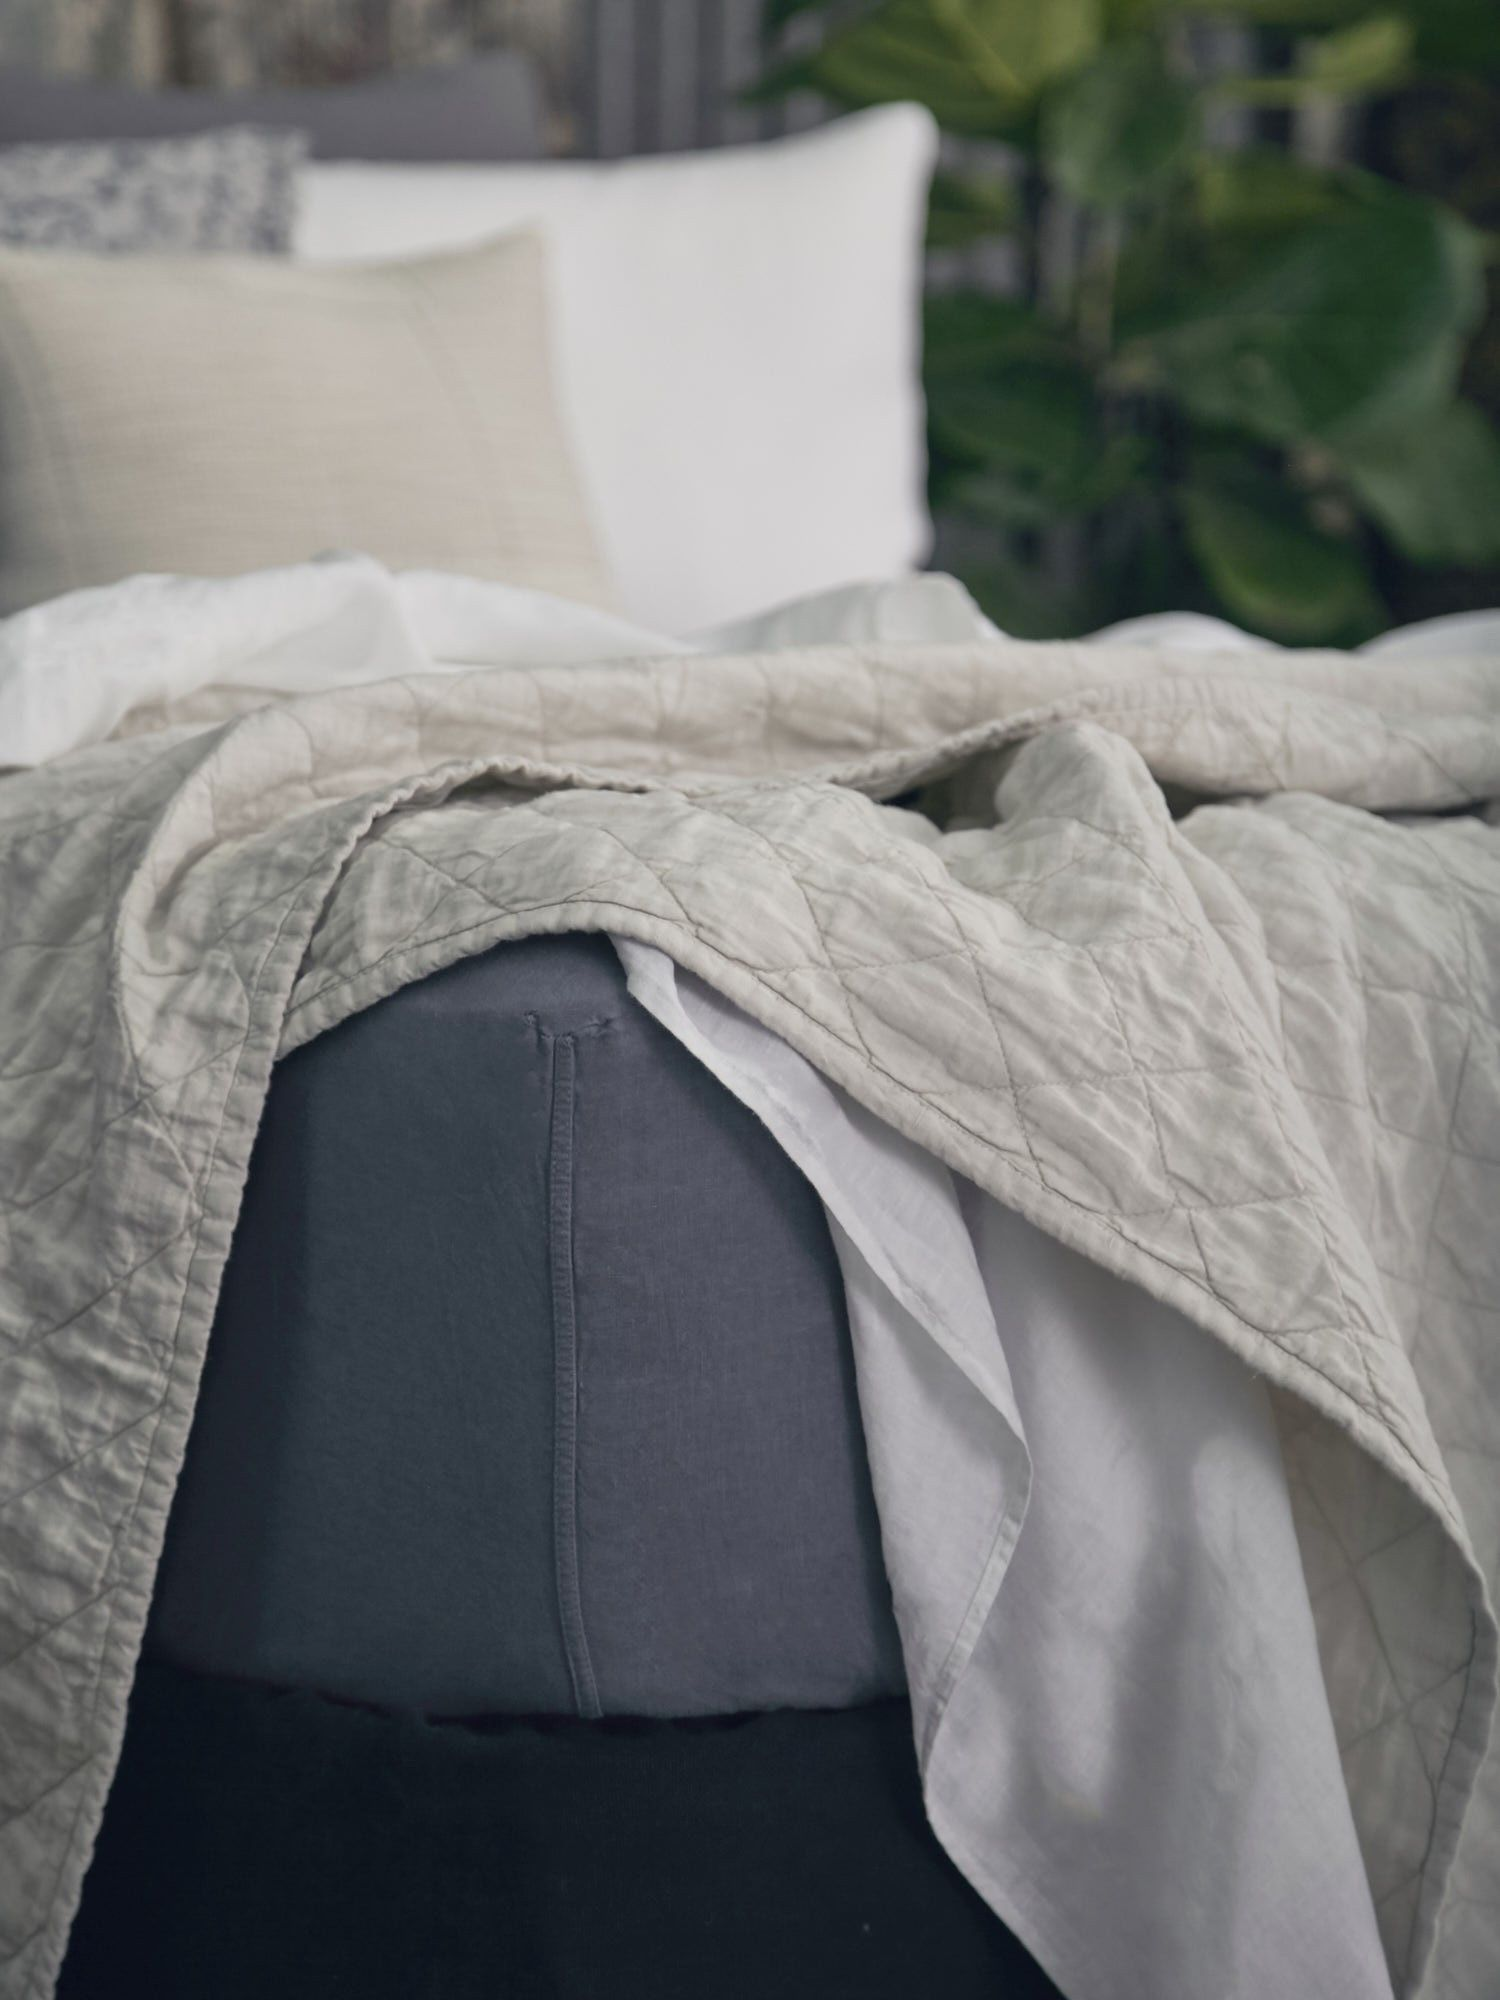 Recommends These Are Our Favorite Sheets On The Market Linen Sheets Linen Bed Sheets King Sheet Sets